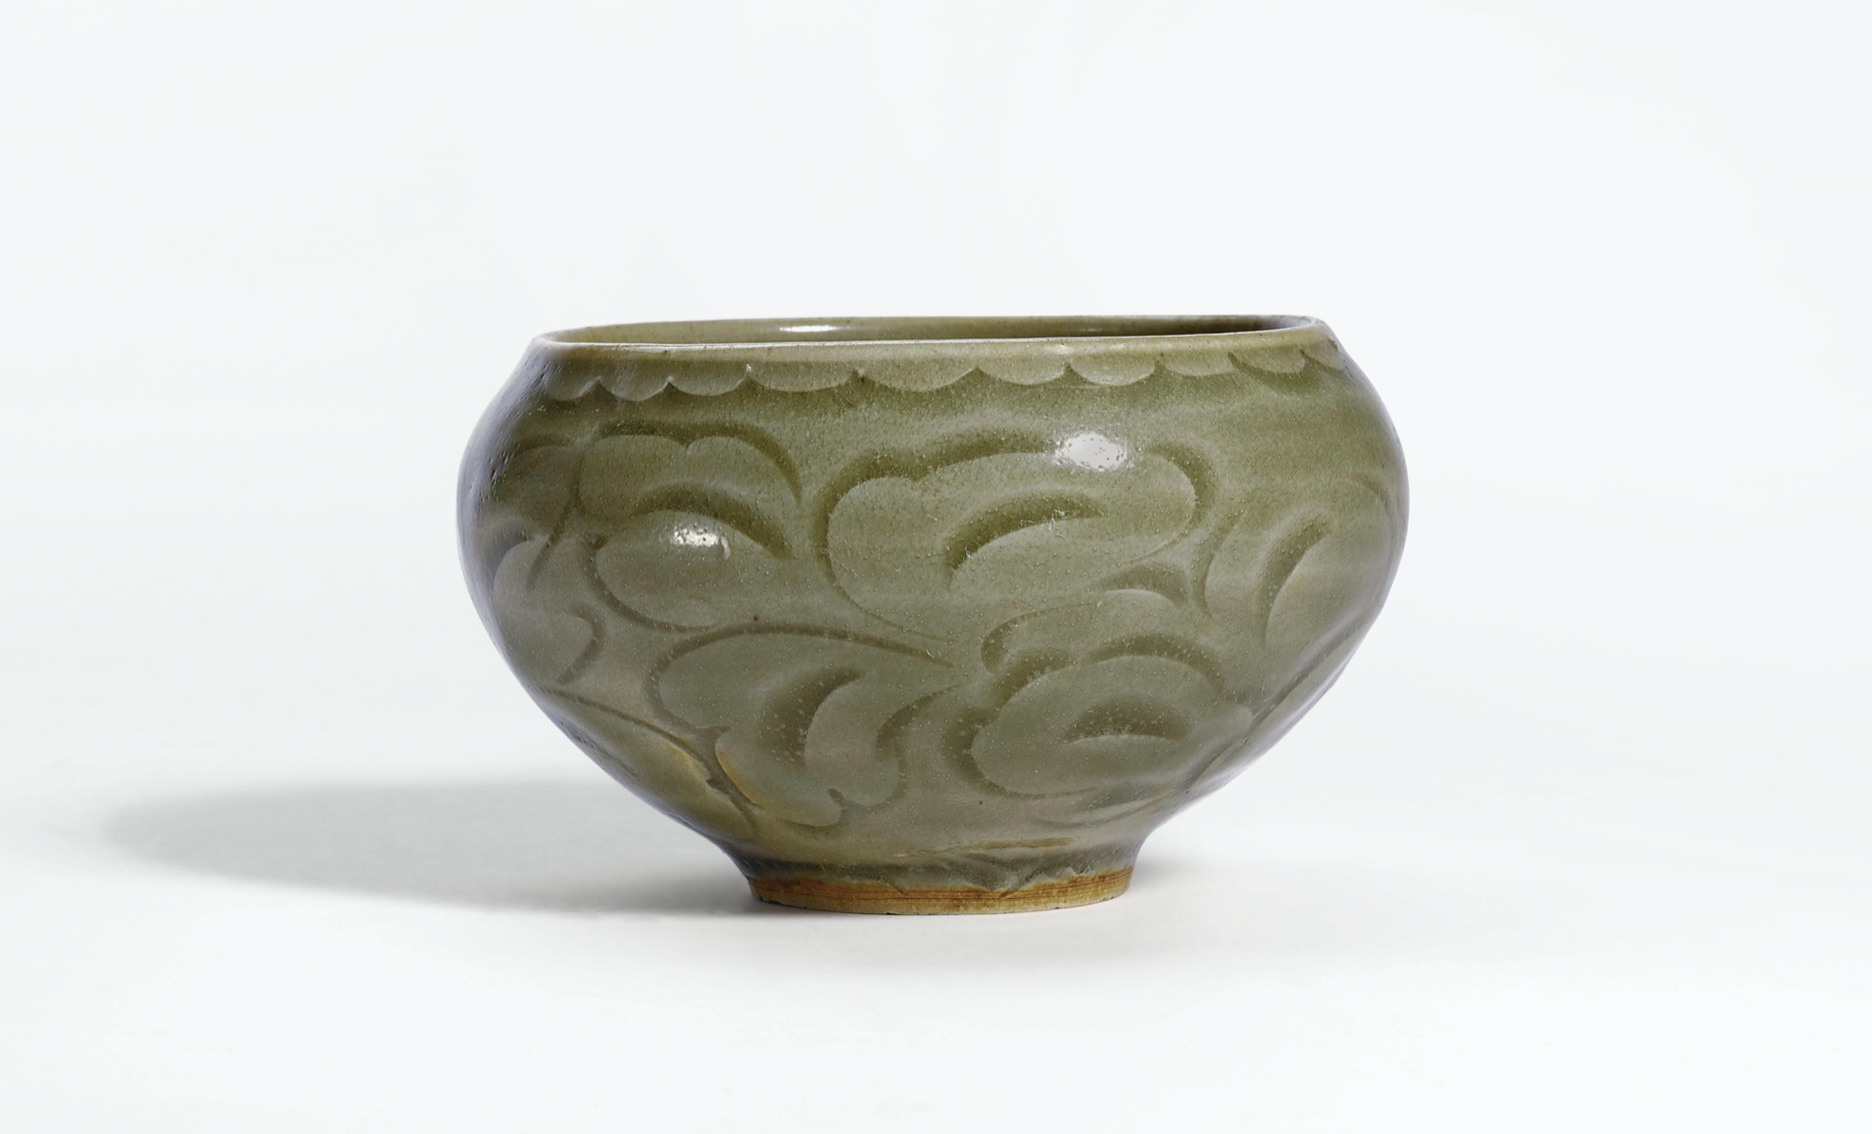 Dimensions: 9.5cm diameter  Provenance: - Sotheby's New York, 23 March 2011, 'Harmony of Form, Serenity of Color: A Private Collection of 'Song' Ceramics', lot 522 - Sotheby's Hong Kong, 29th October 1991, lot 5.